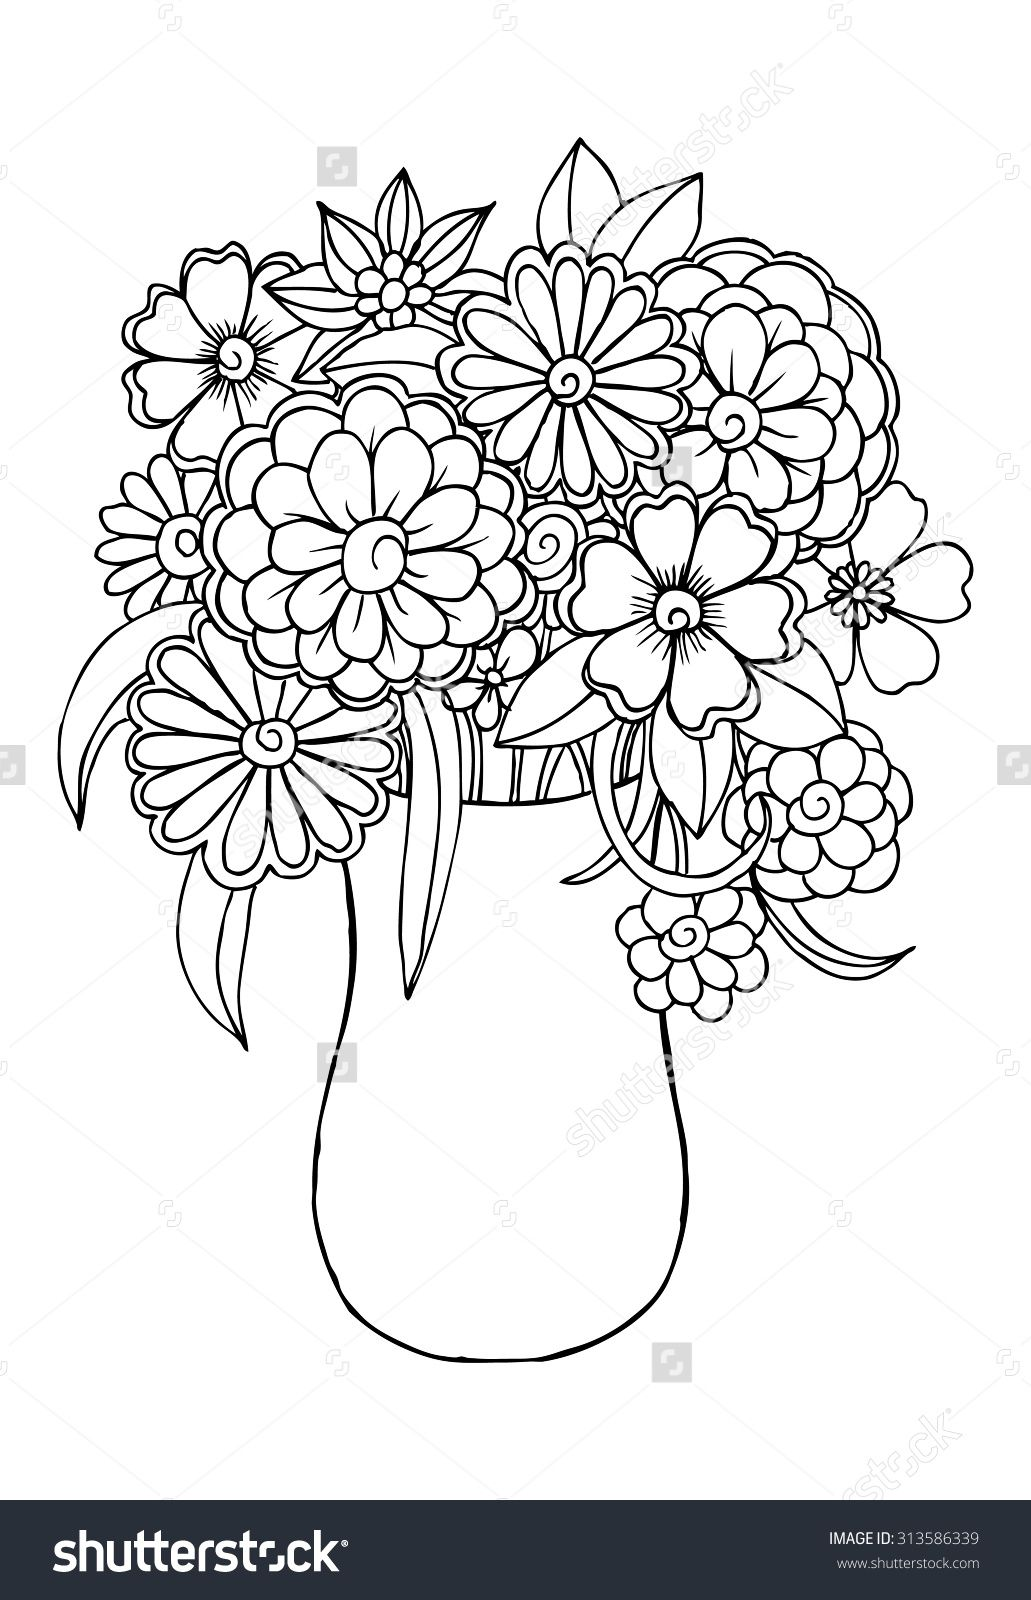 Vector bouquet of flowers in a vase | Art-Draw Flowers and Plants ...